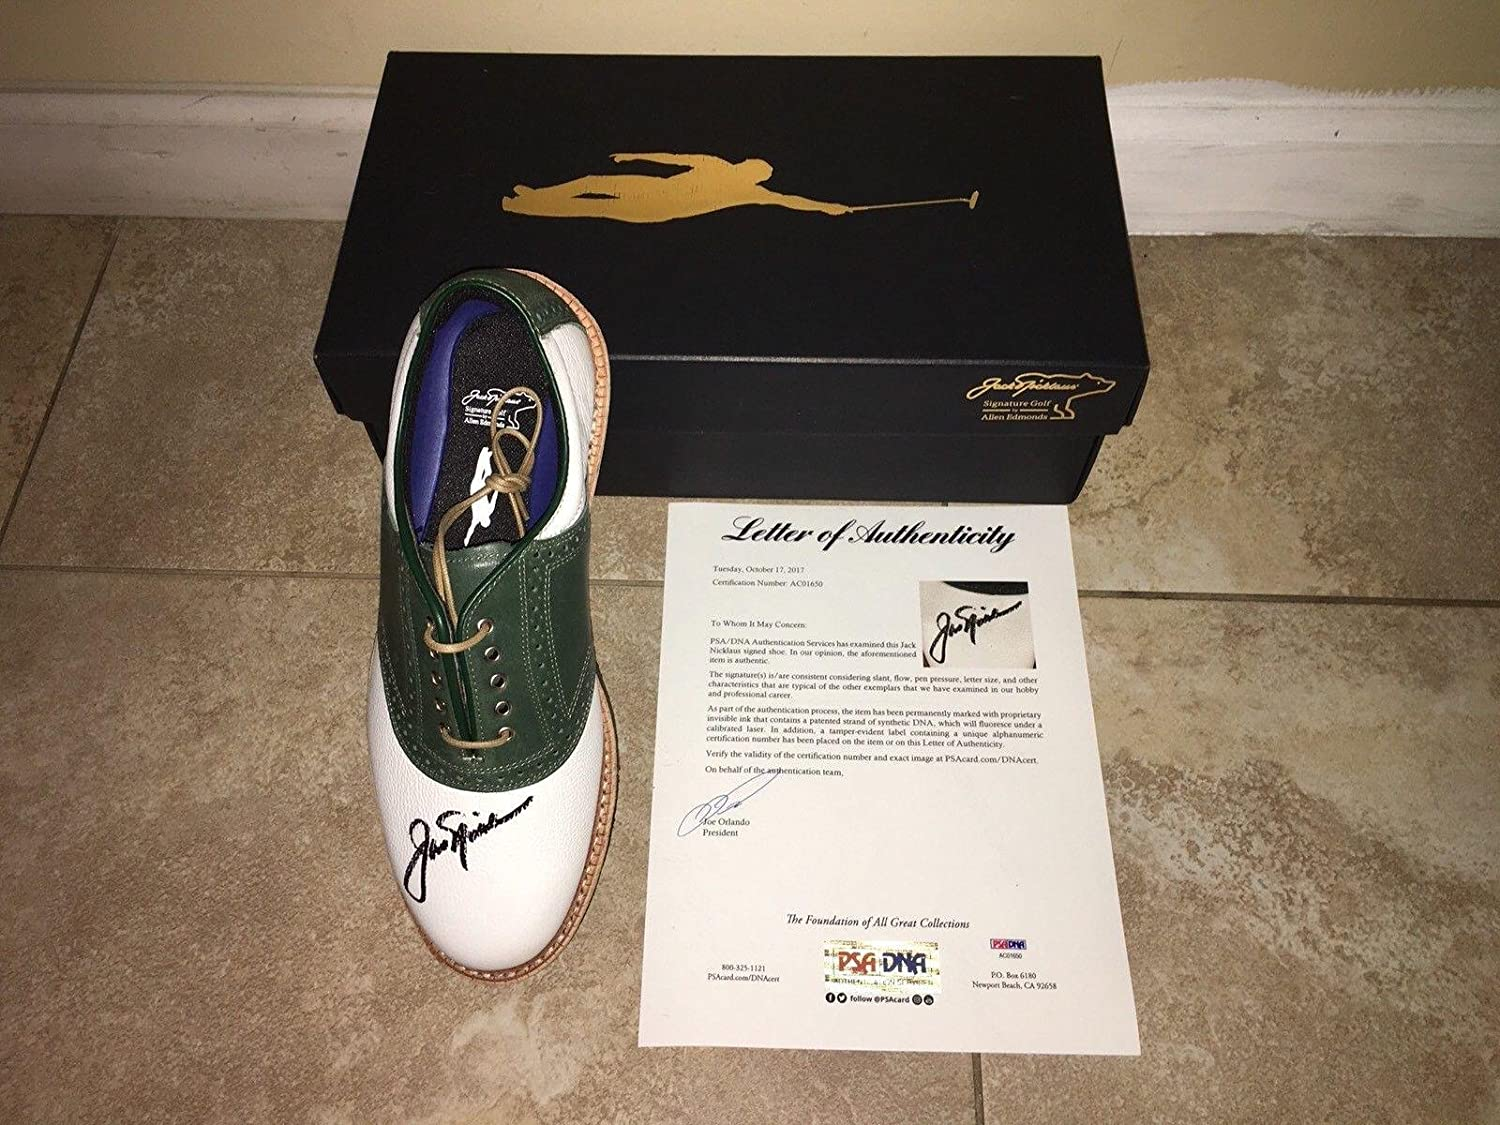 Jack Nicklaus Signed Official Golden Bear Shoe 6x Masters Champ #2 - PSA/DNA Certified - Autographed Golf Shoes